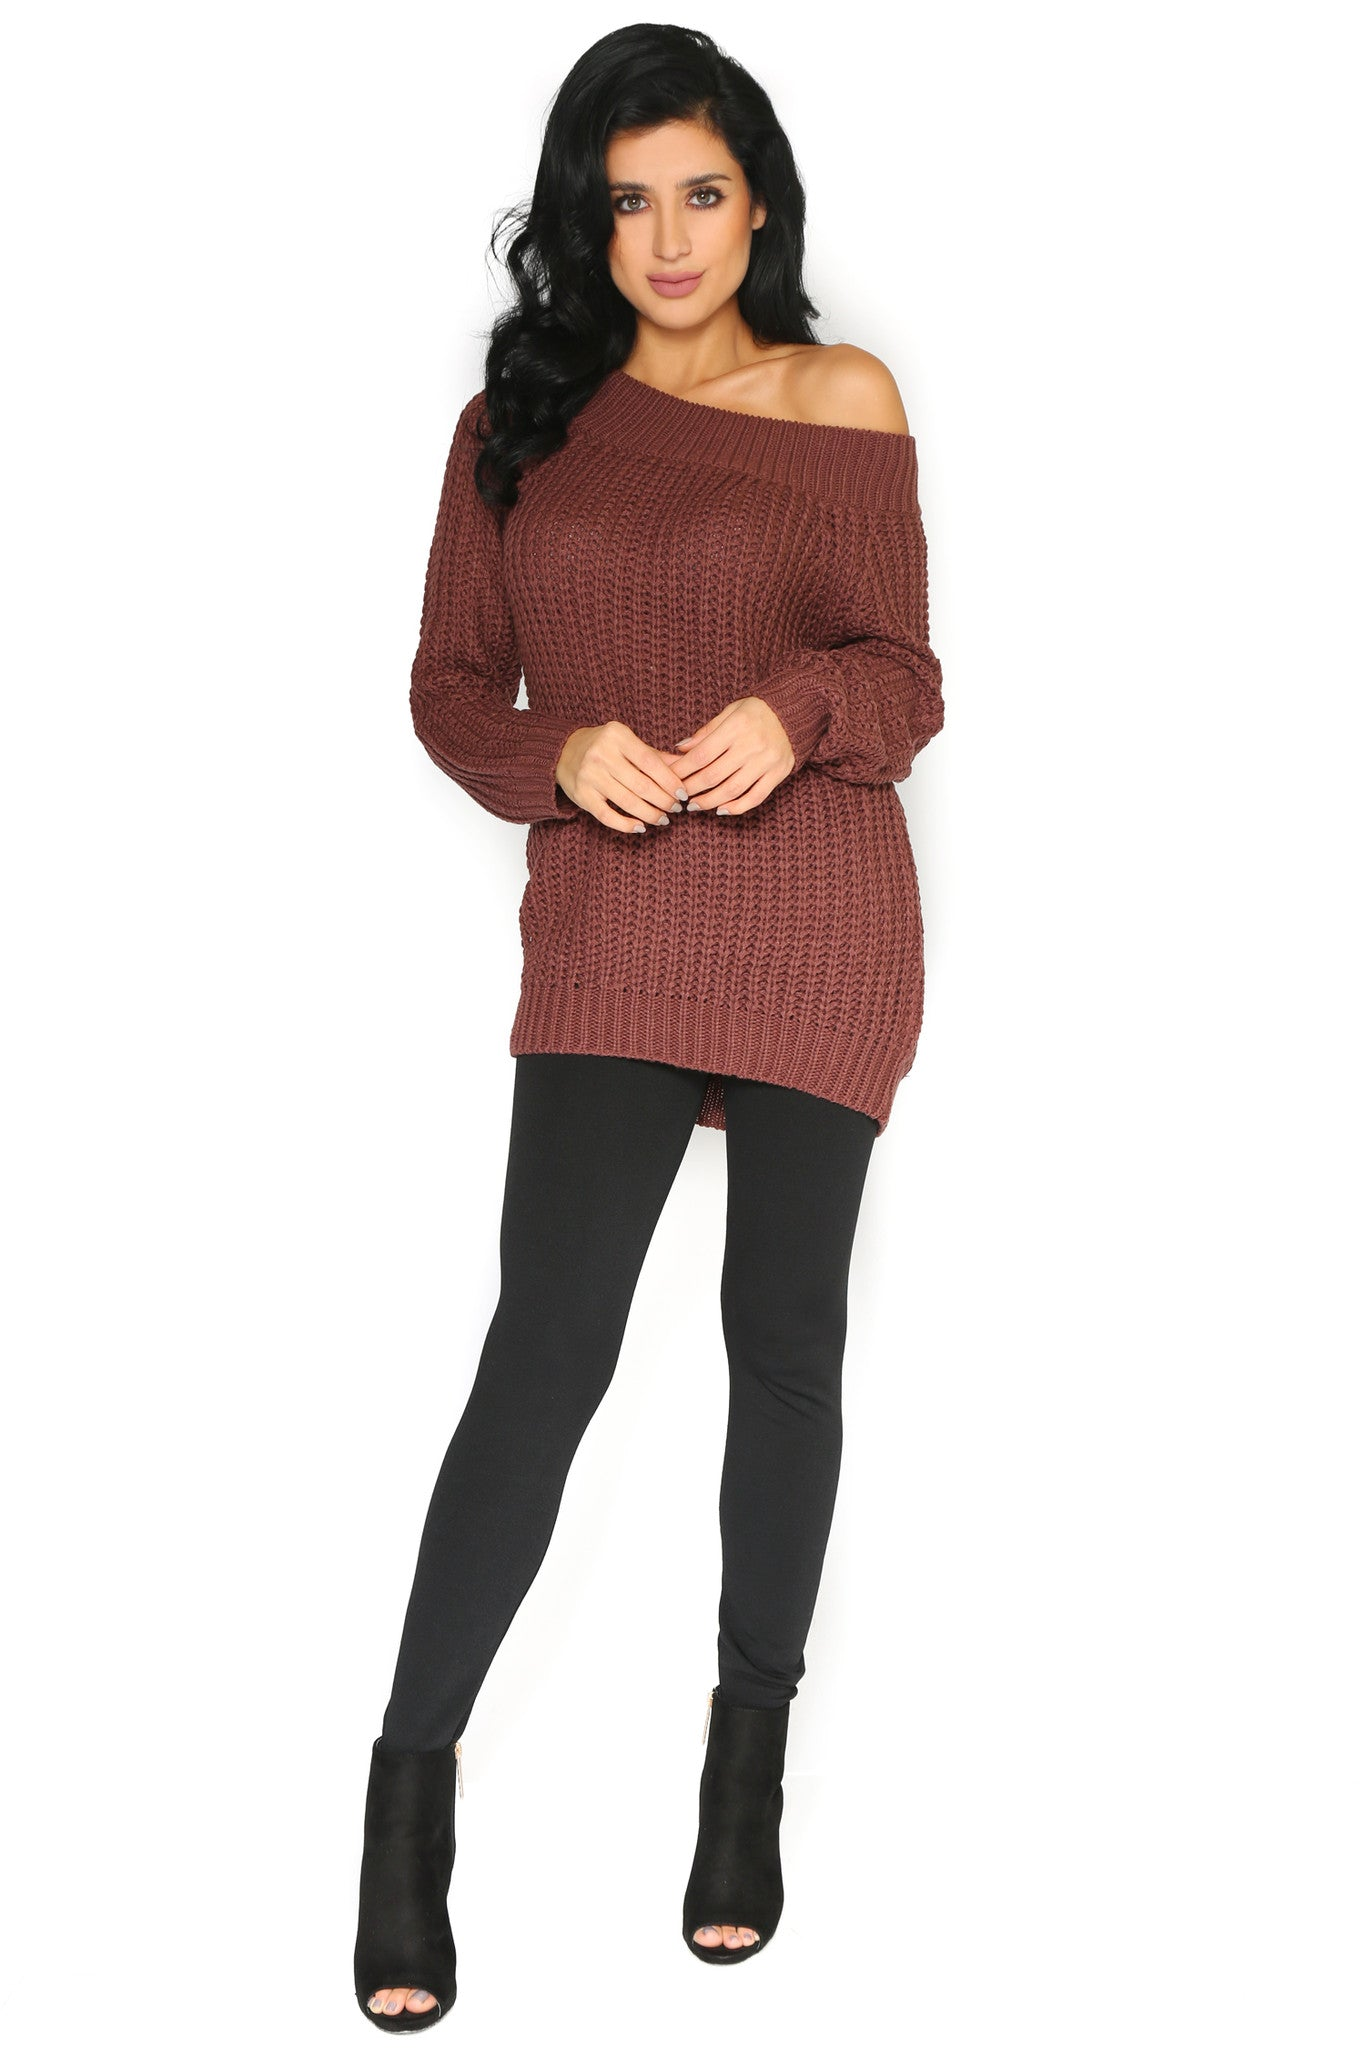 VICTORIA SWEATER - Glam Envy - 1